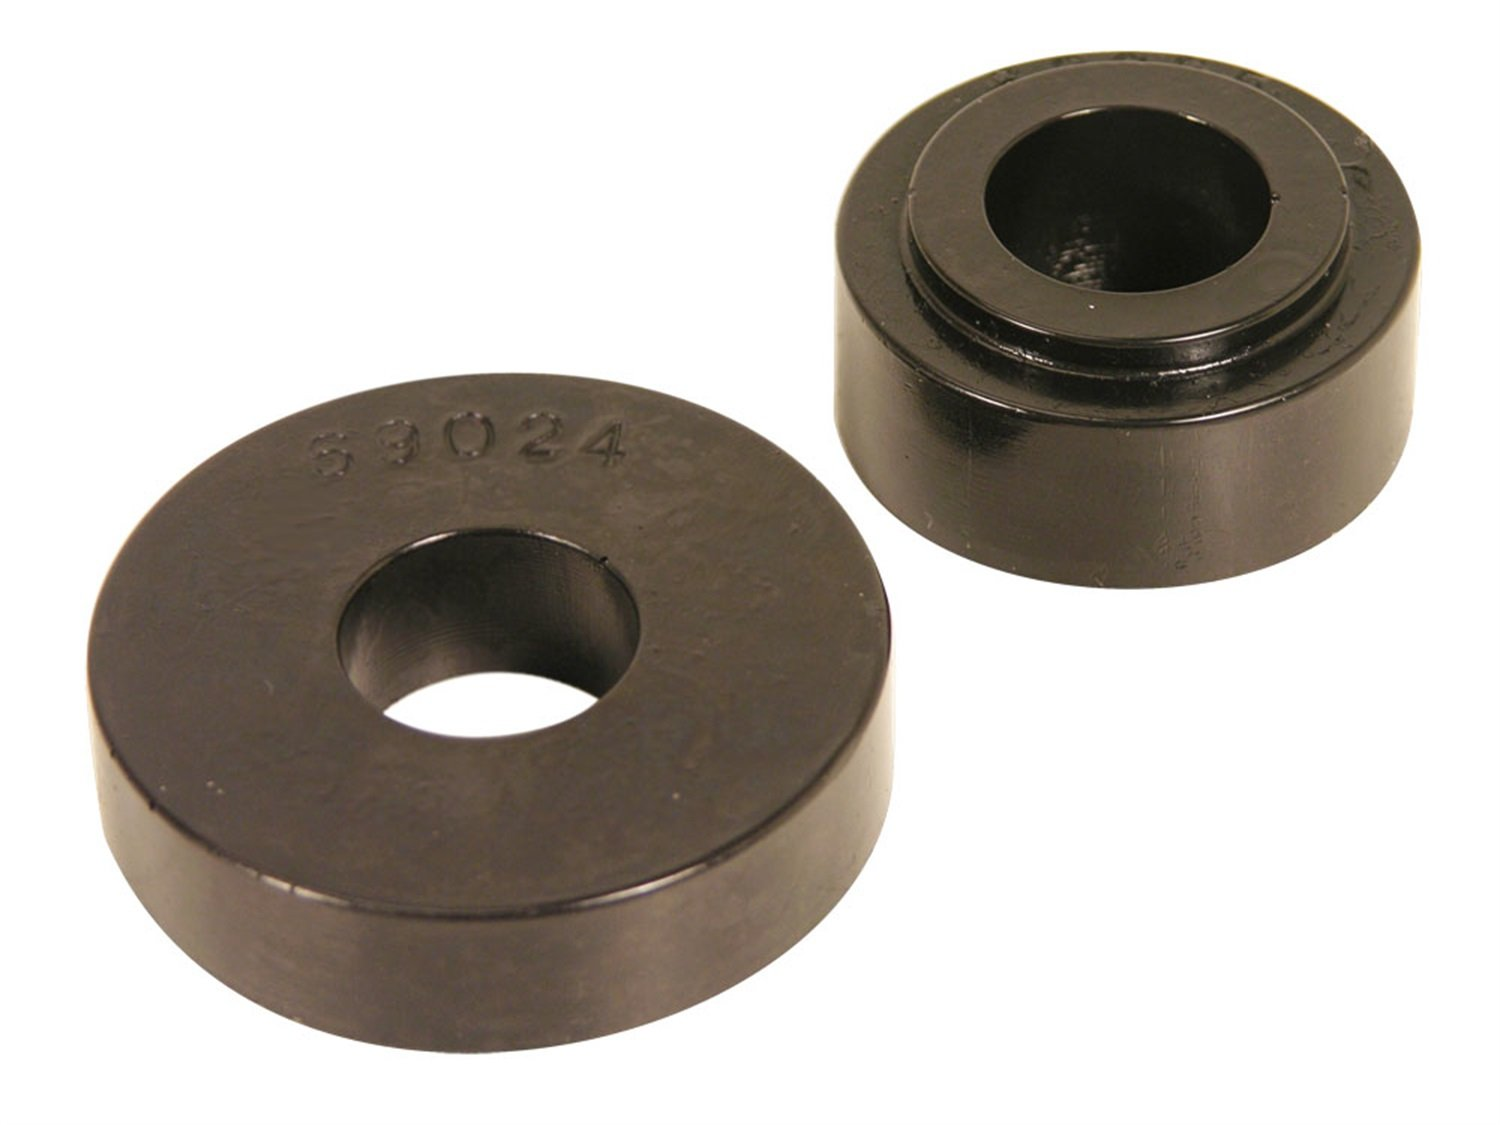 Prothane 7-1606-BL Black Differential Pinion Mount Grommet Kit